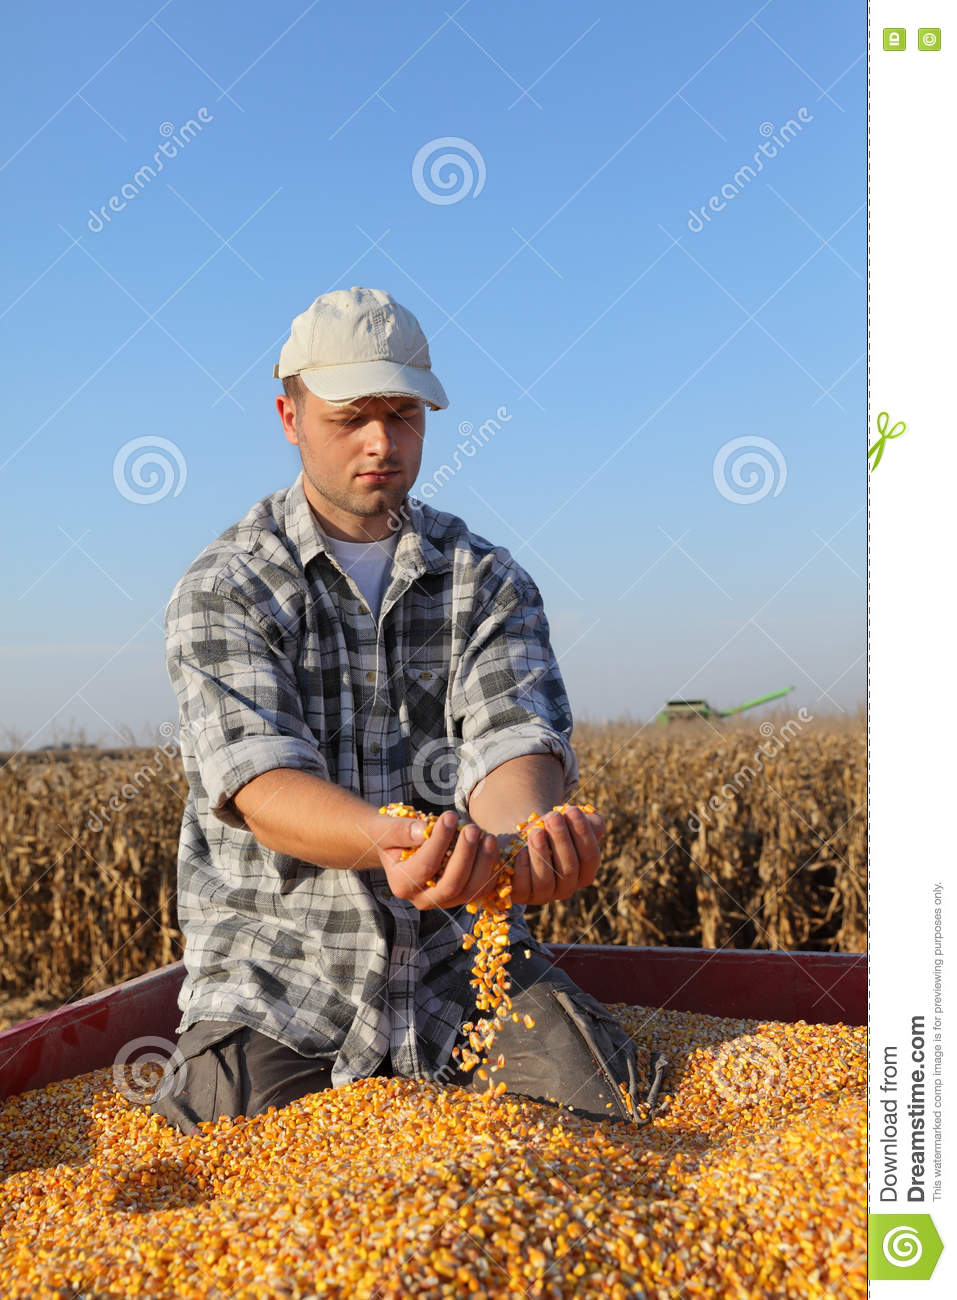 Agriculture, Corn Harvest, Farmer And Crop Stock Image